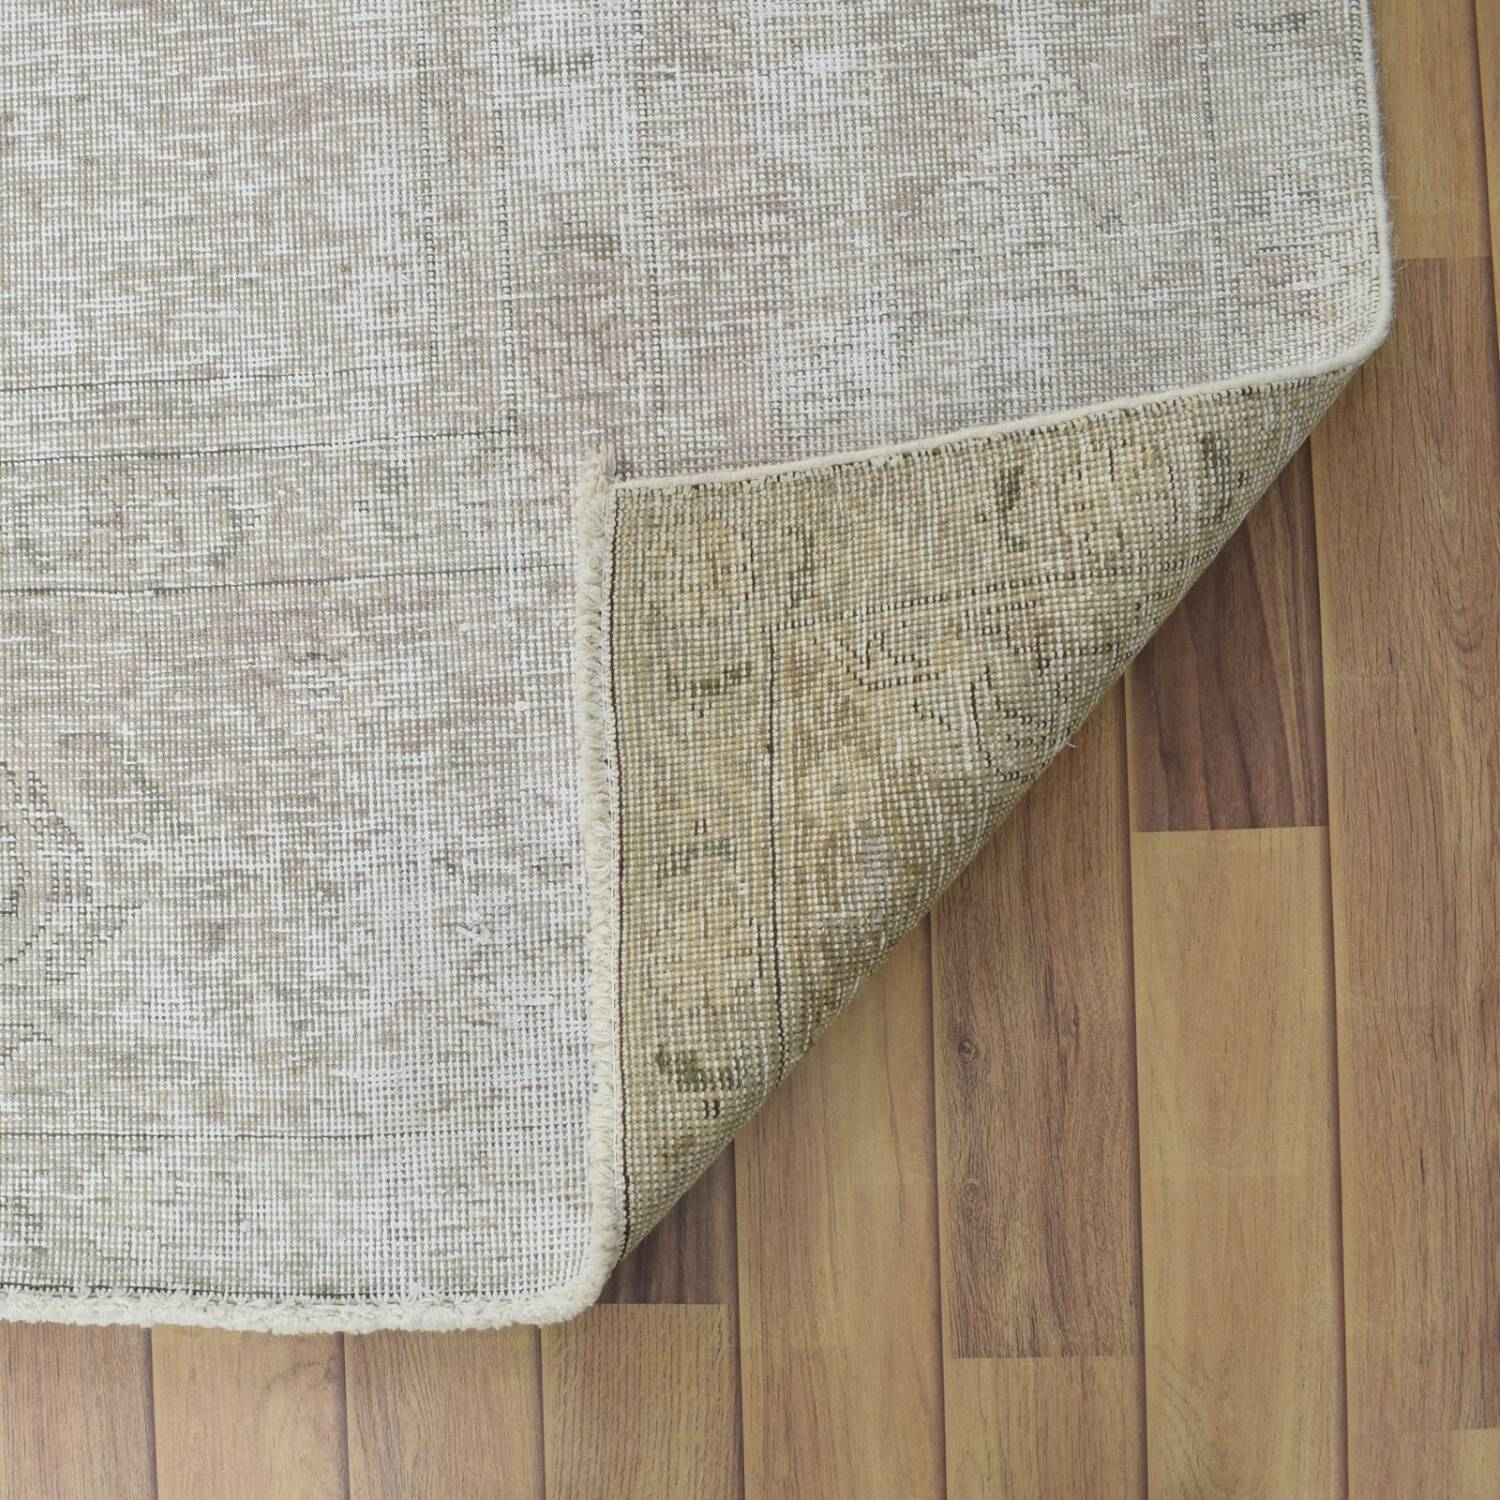 Antique Floral Muted Tabriz Persian Distressed Area Rug 9x12 image 7